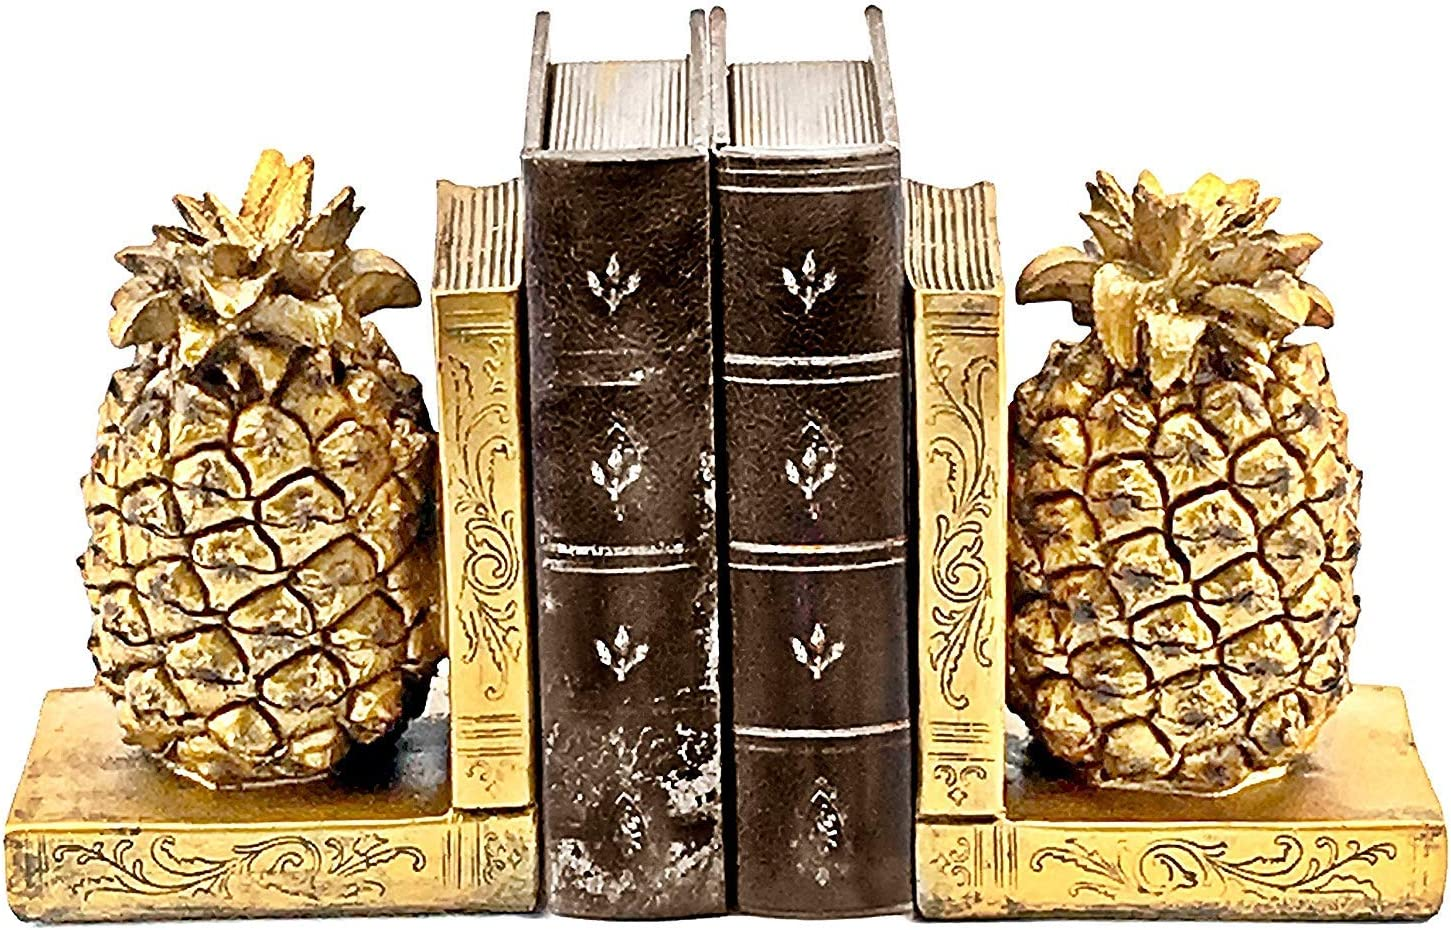 Bellaa 24162 Decorative excellence Bookend Home Japan Maker New Décor Book Pineappl Ends